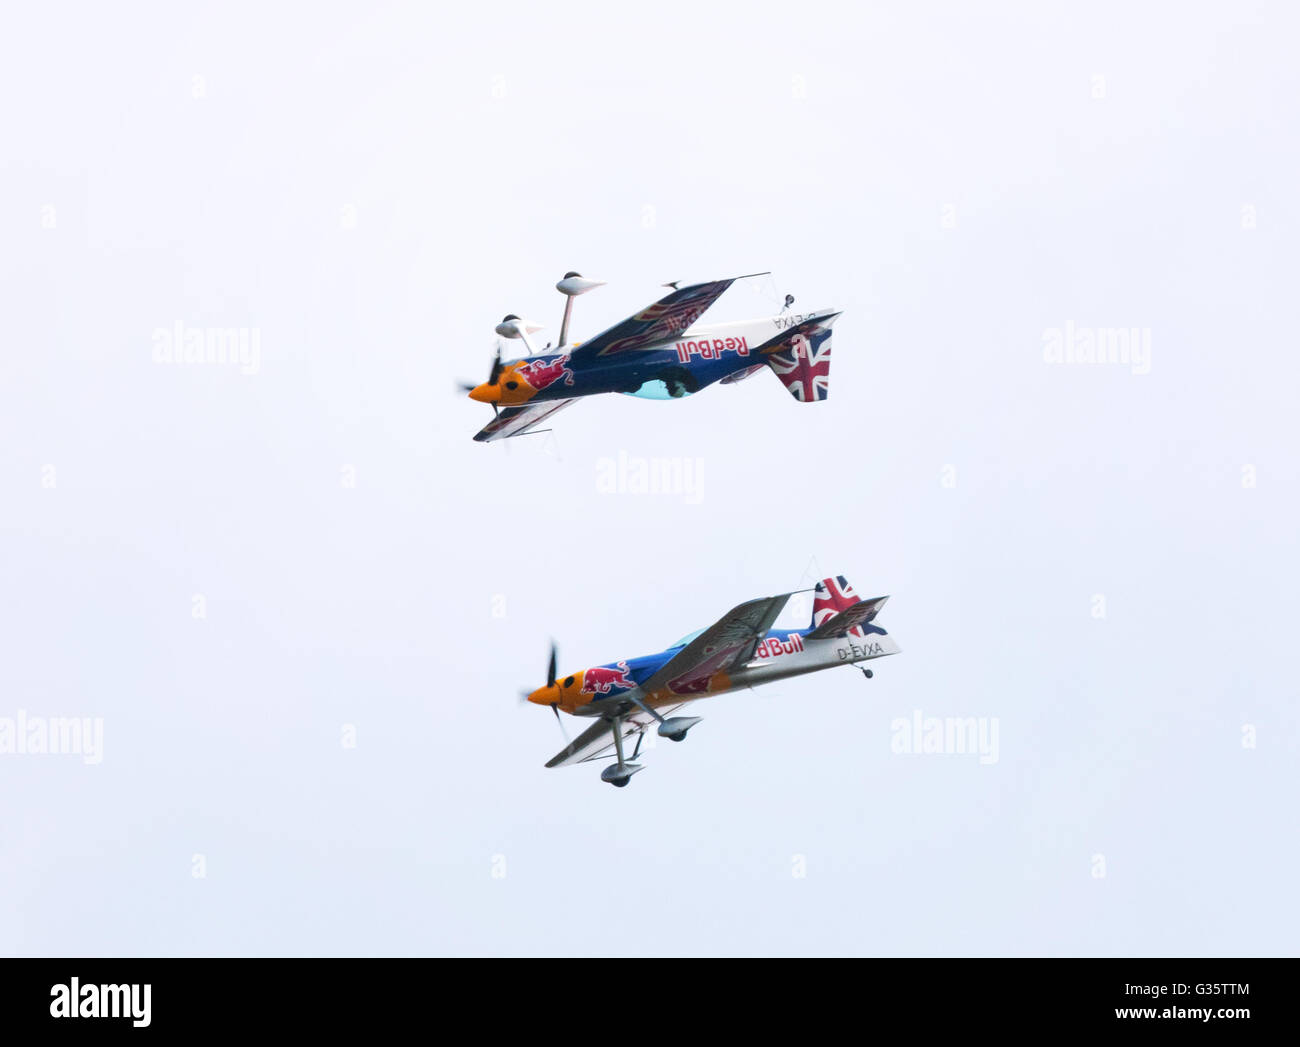 The Red Bull Aerobatic team flying at the American Airshow, Imperial War Museum, Duxford, UK - Stock Image